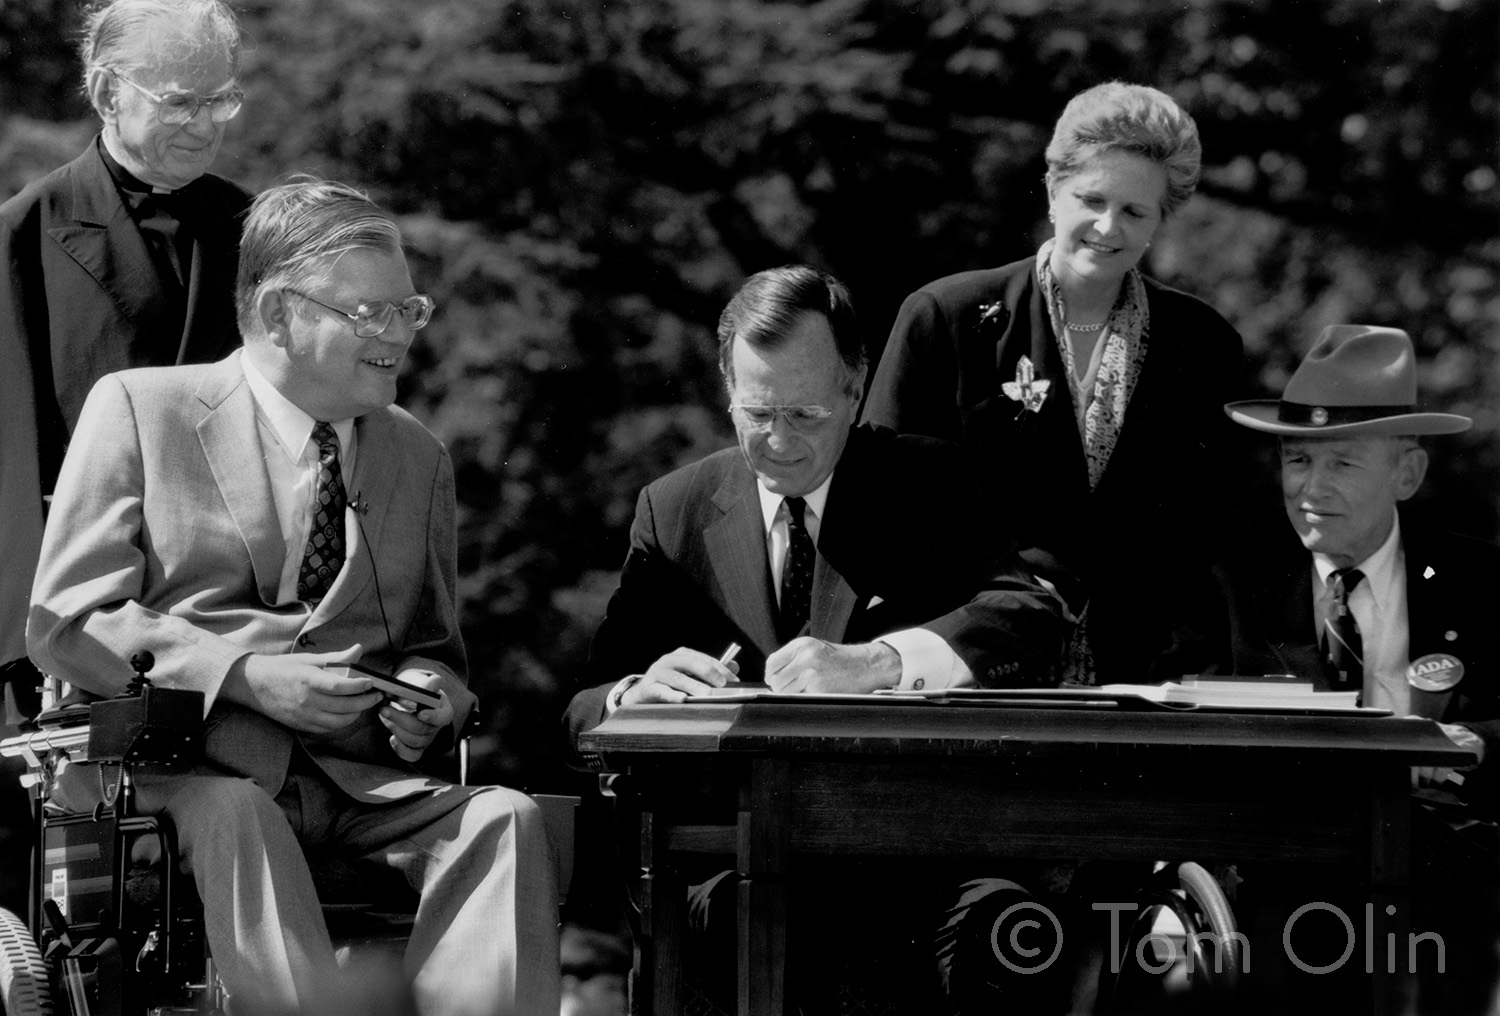 Black and white photo of the President signing a document with others smiling around him